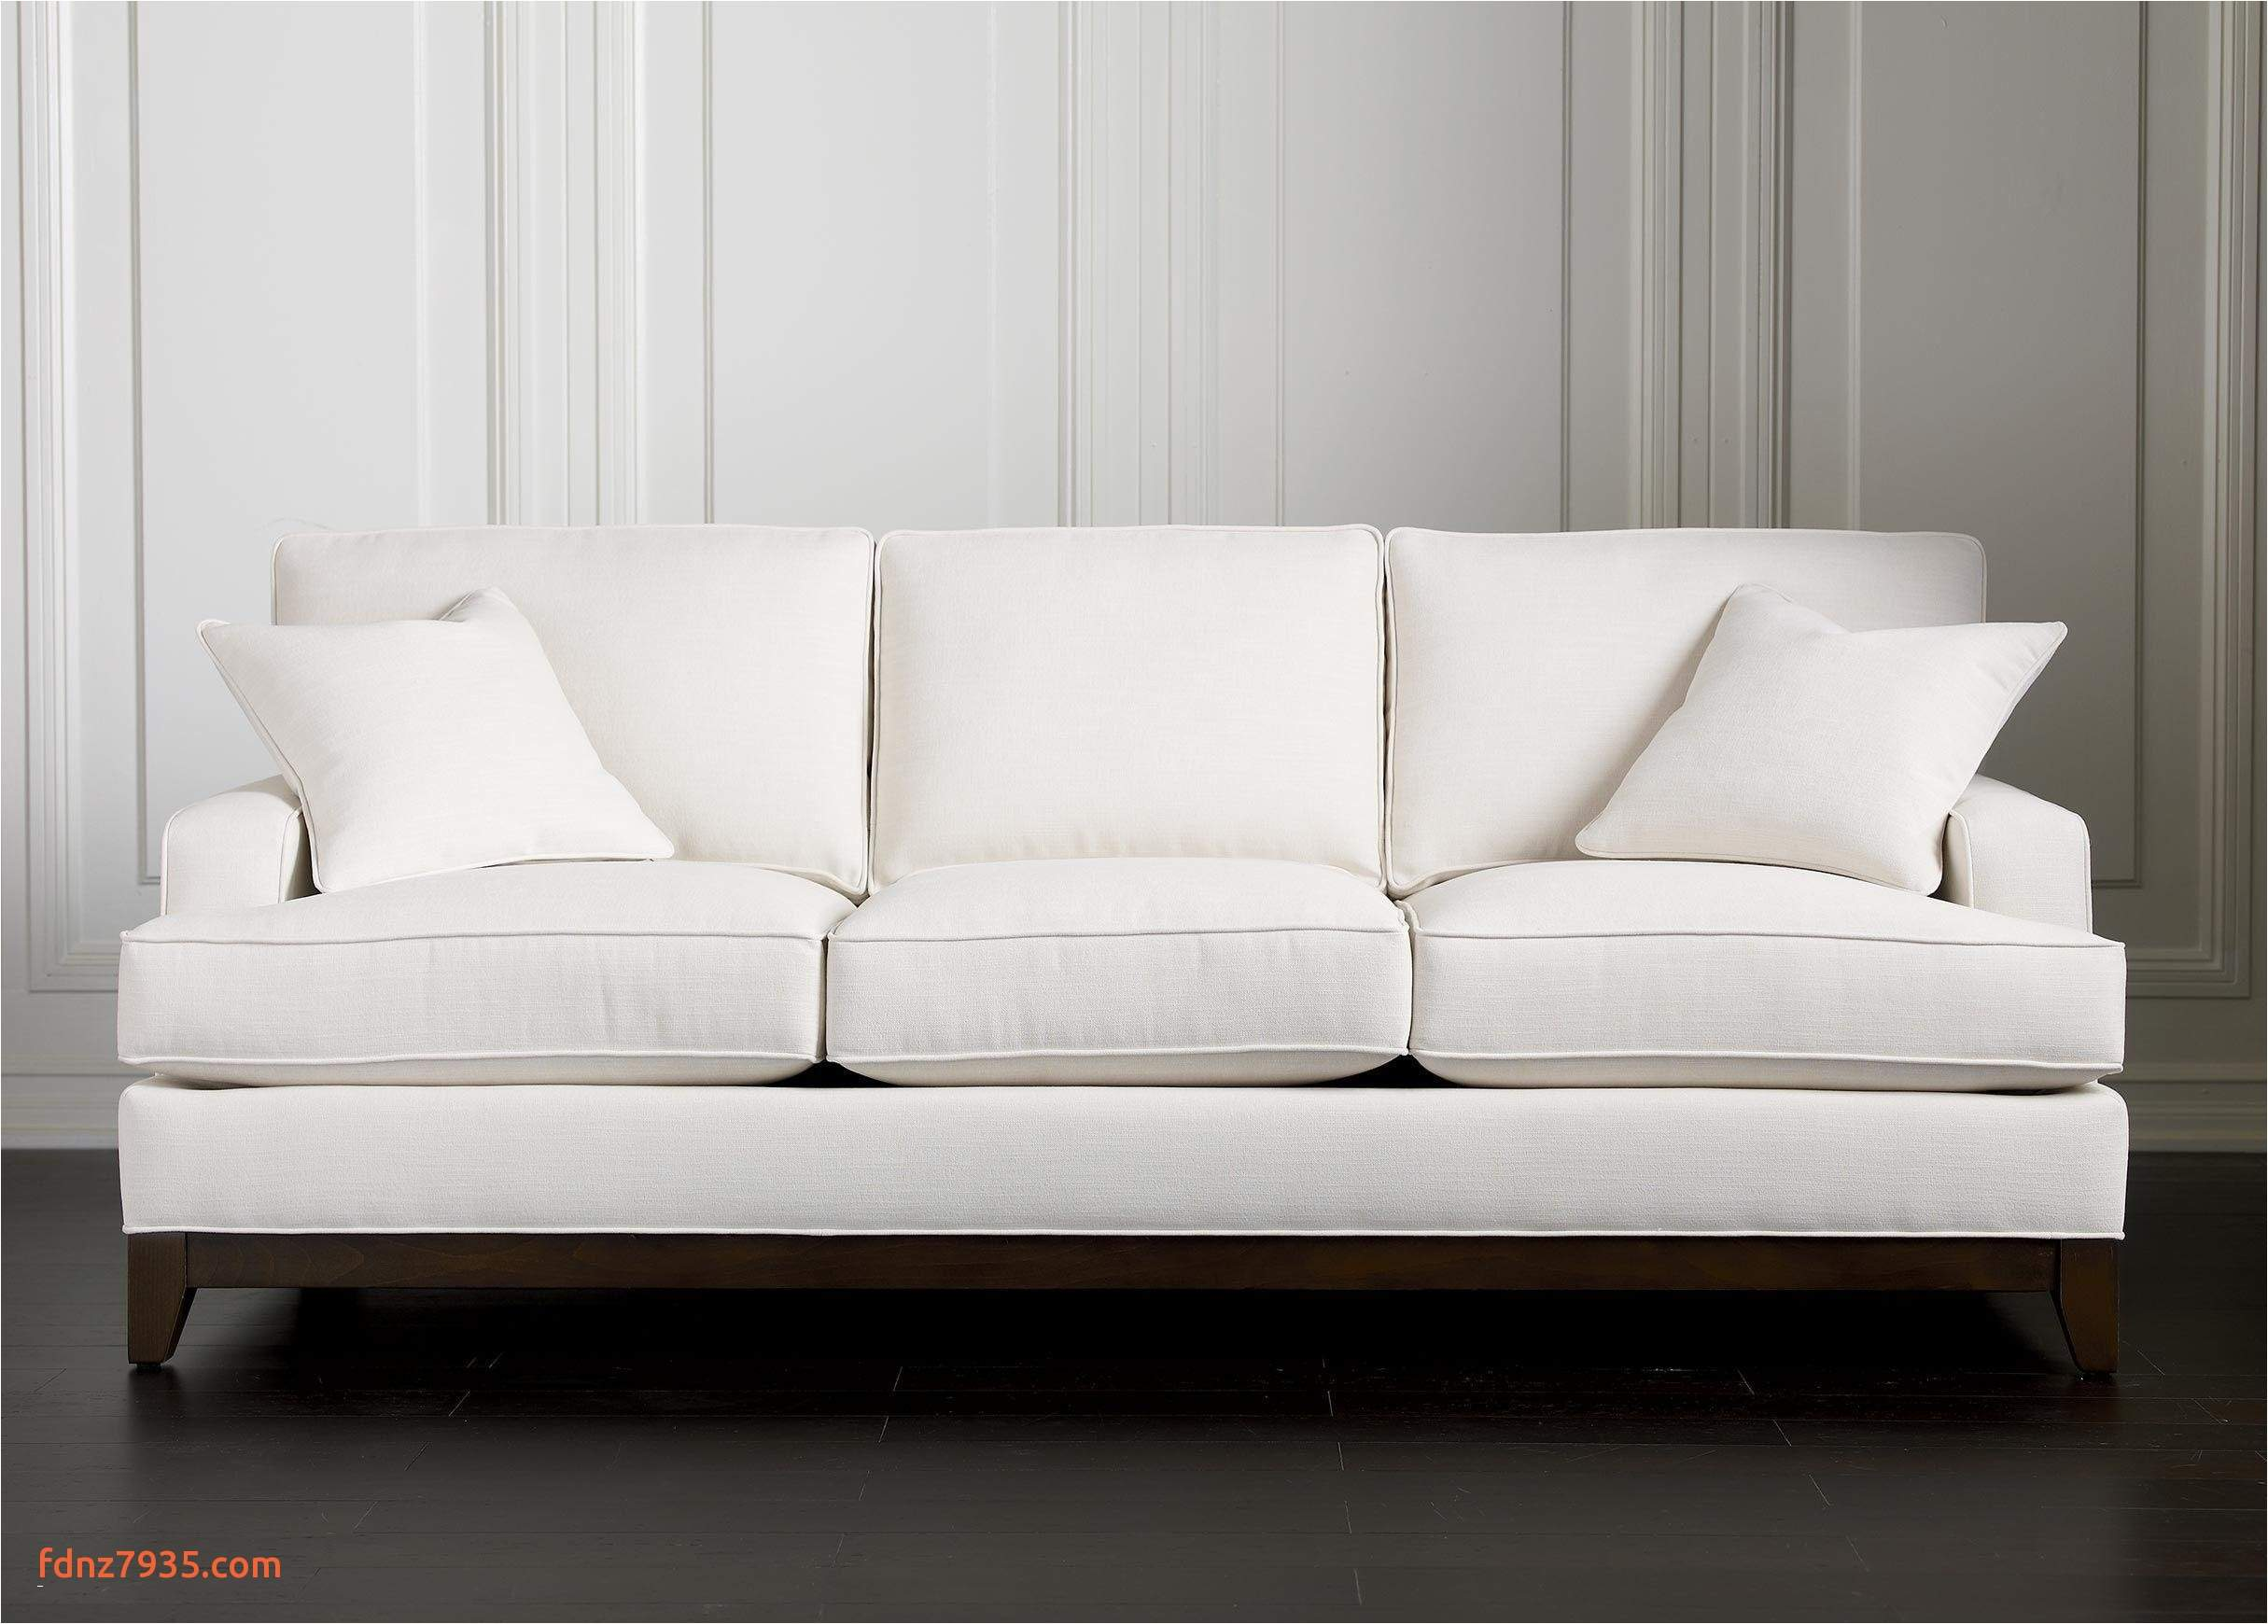 sofa vs couch sofa vs couch best sofa or couches elegant rattan couch 0d of sofa vs couch